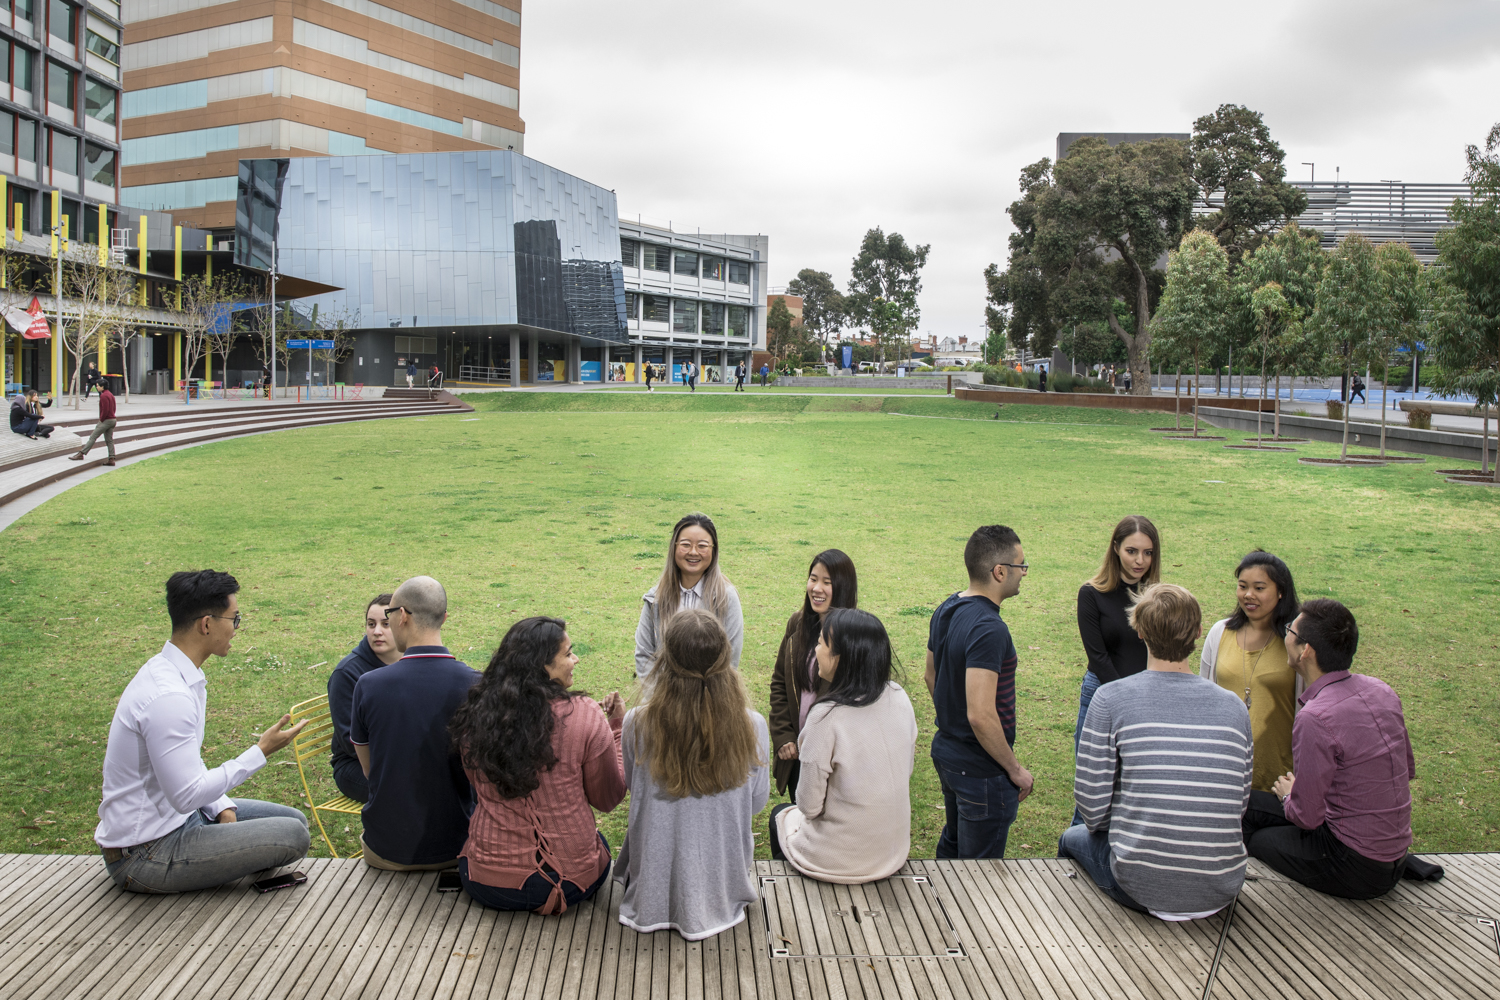 monashStudents11.jpg